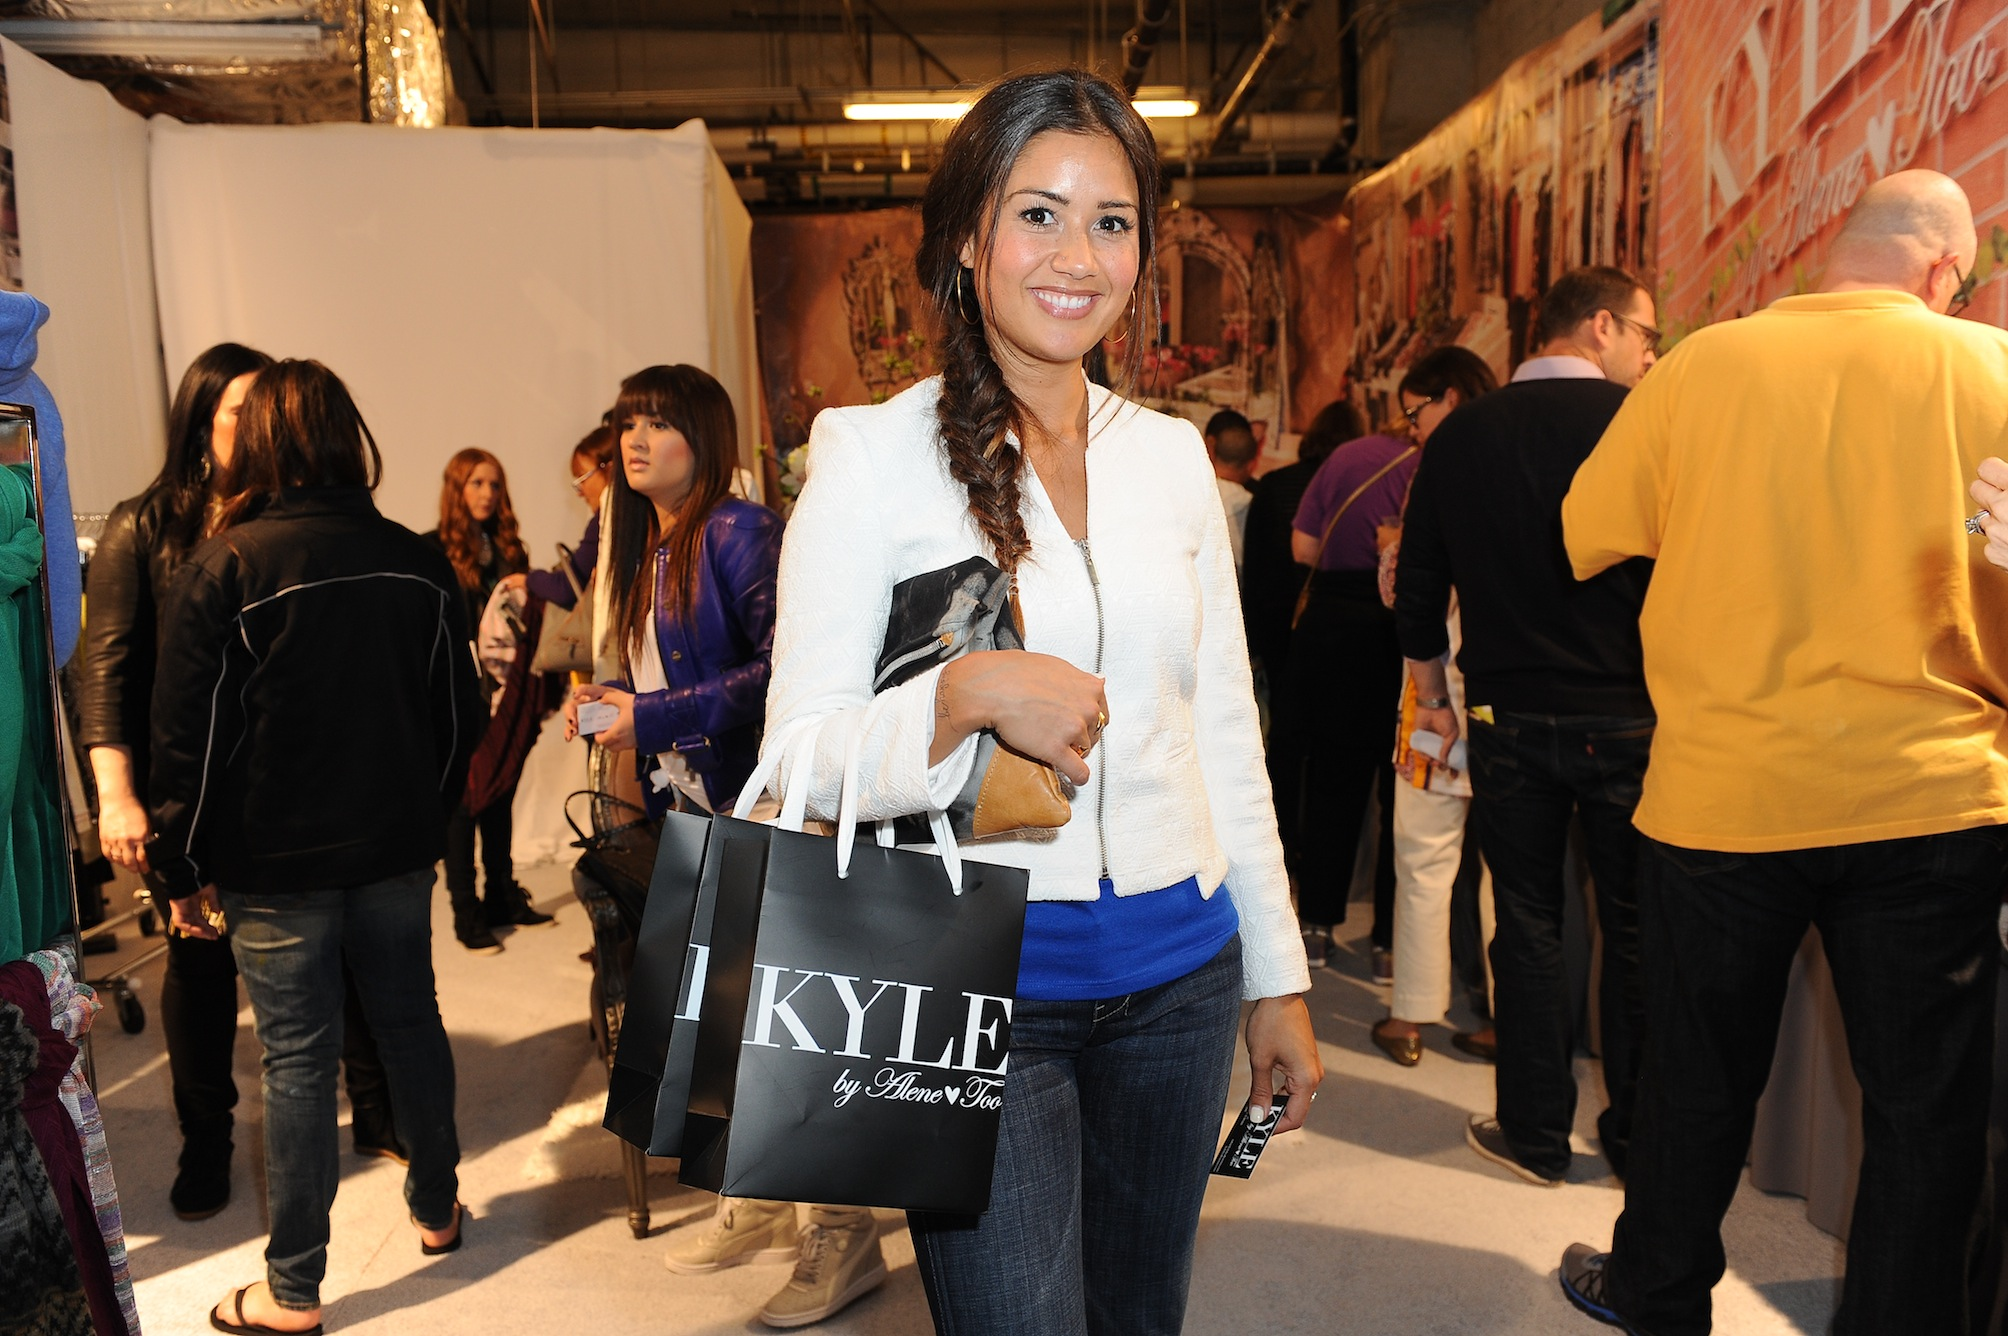 Catherine Giudici at Kyle by Alene Too Lakers Event